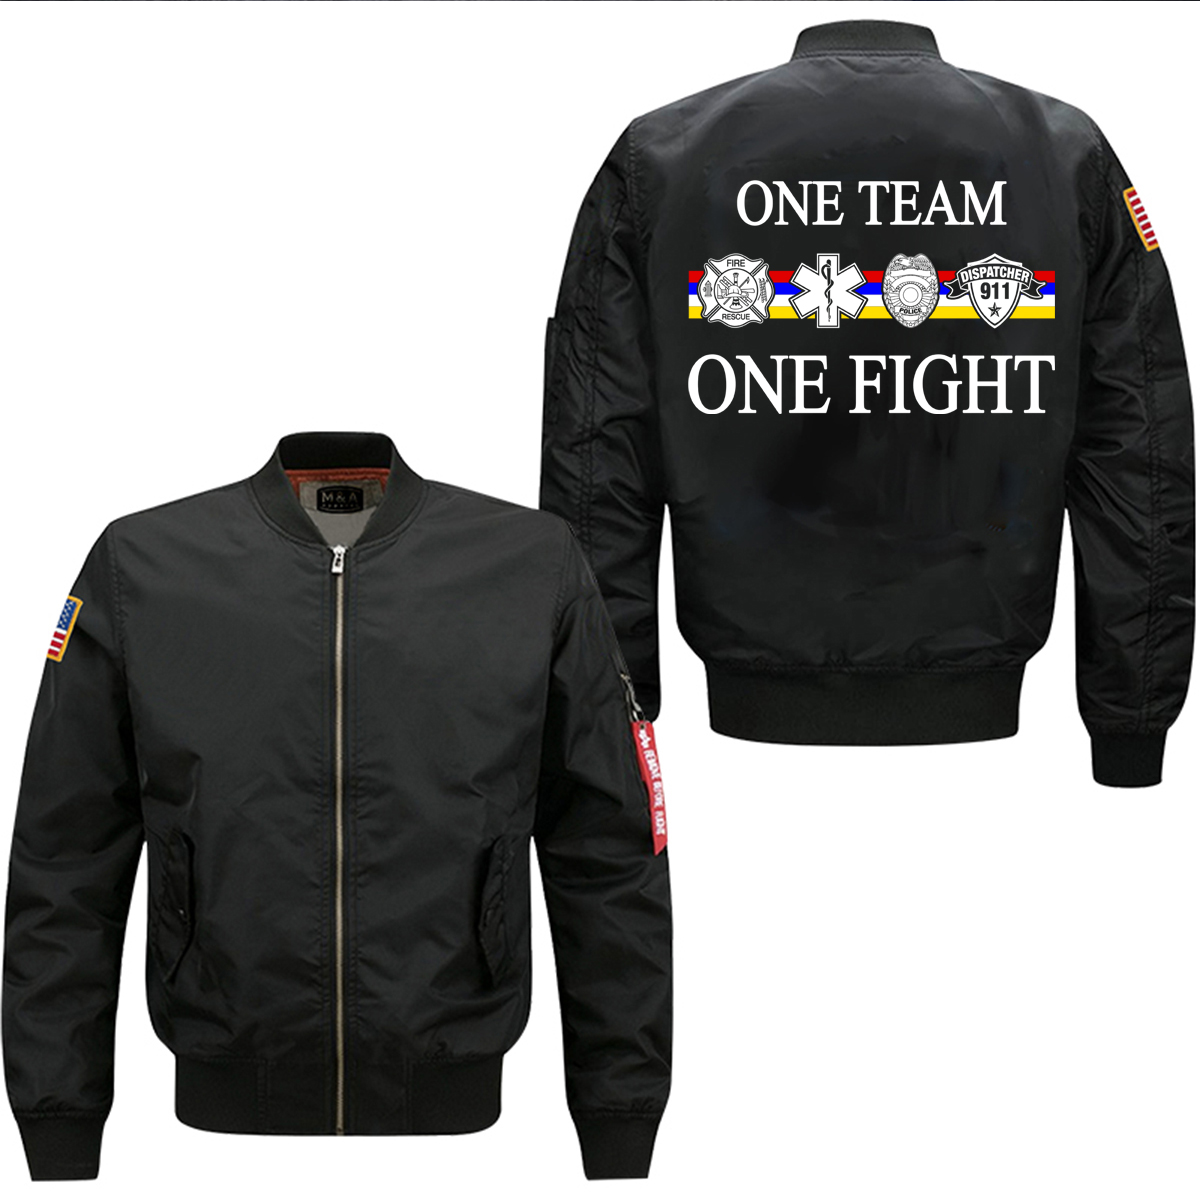 new ONE TEAM ONE FIGHT spring men's flight jacket  leisure collar code Air Force pilots mans windbreaker jacket,EU siz